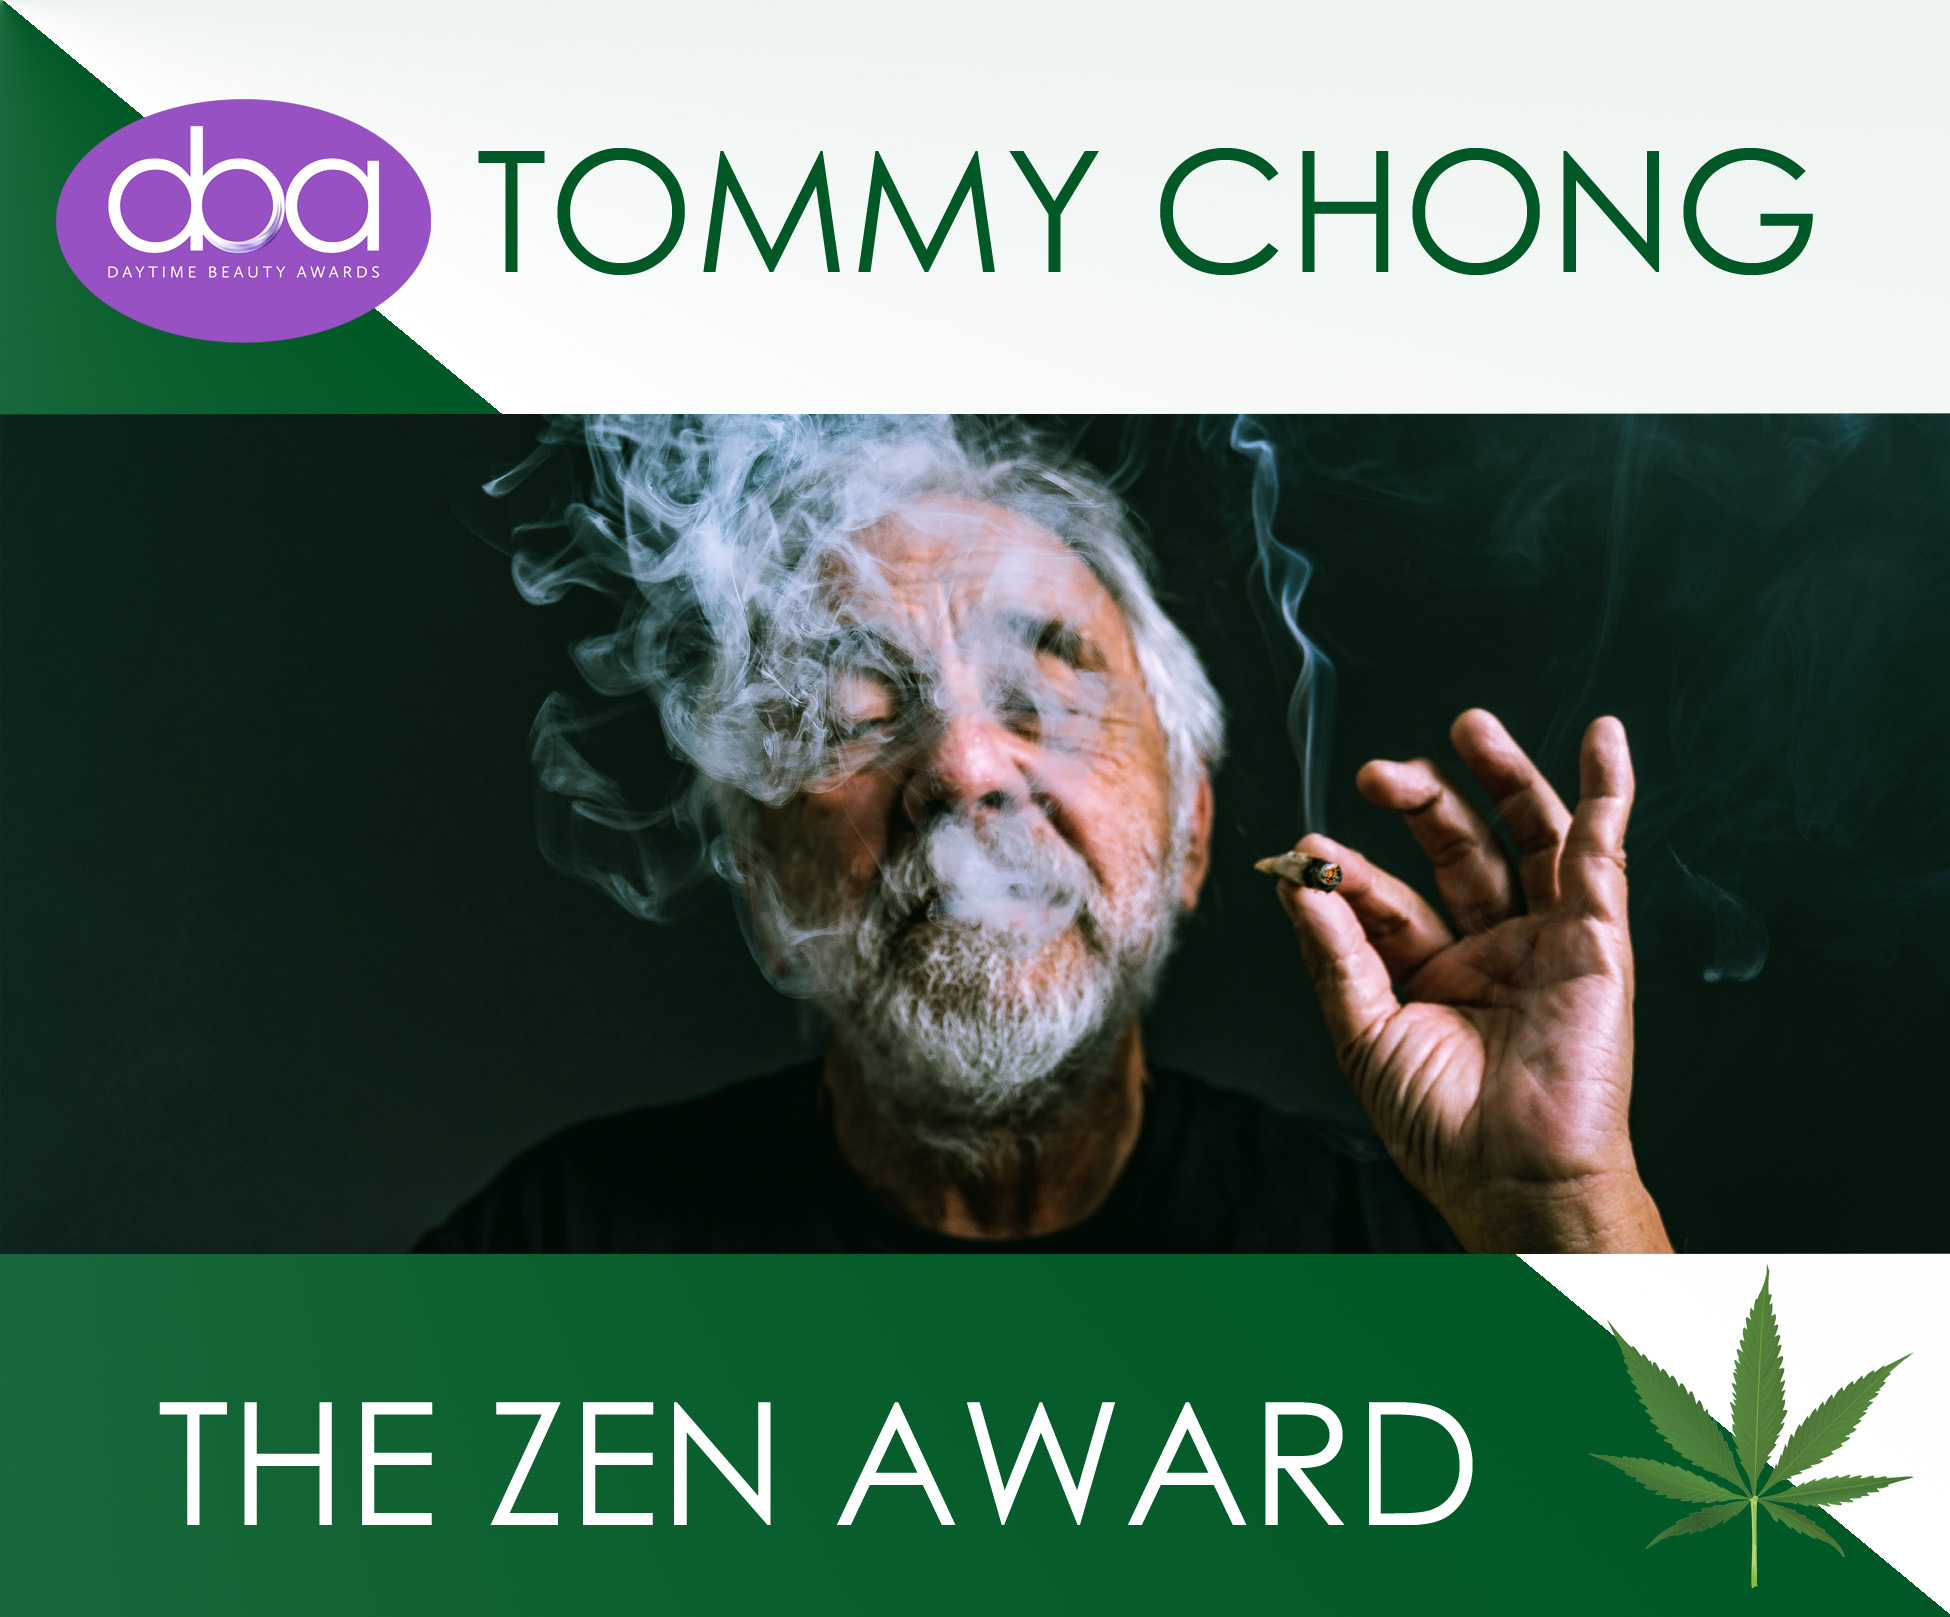 tommy chong, daytime beauty awards